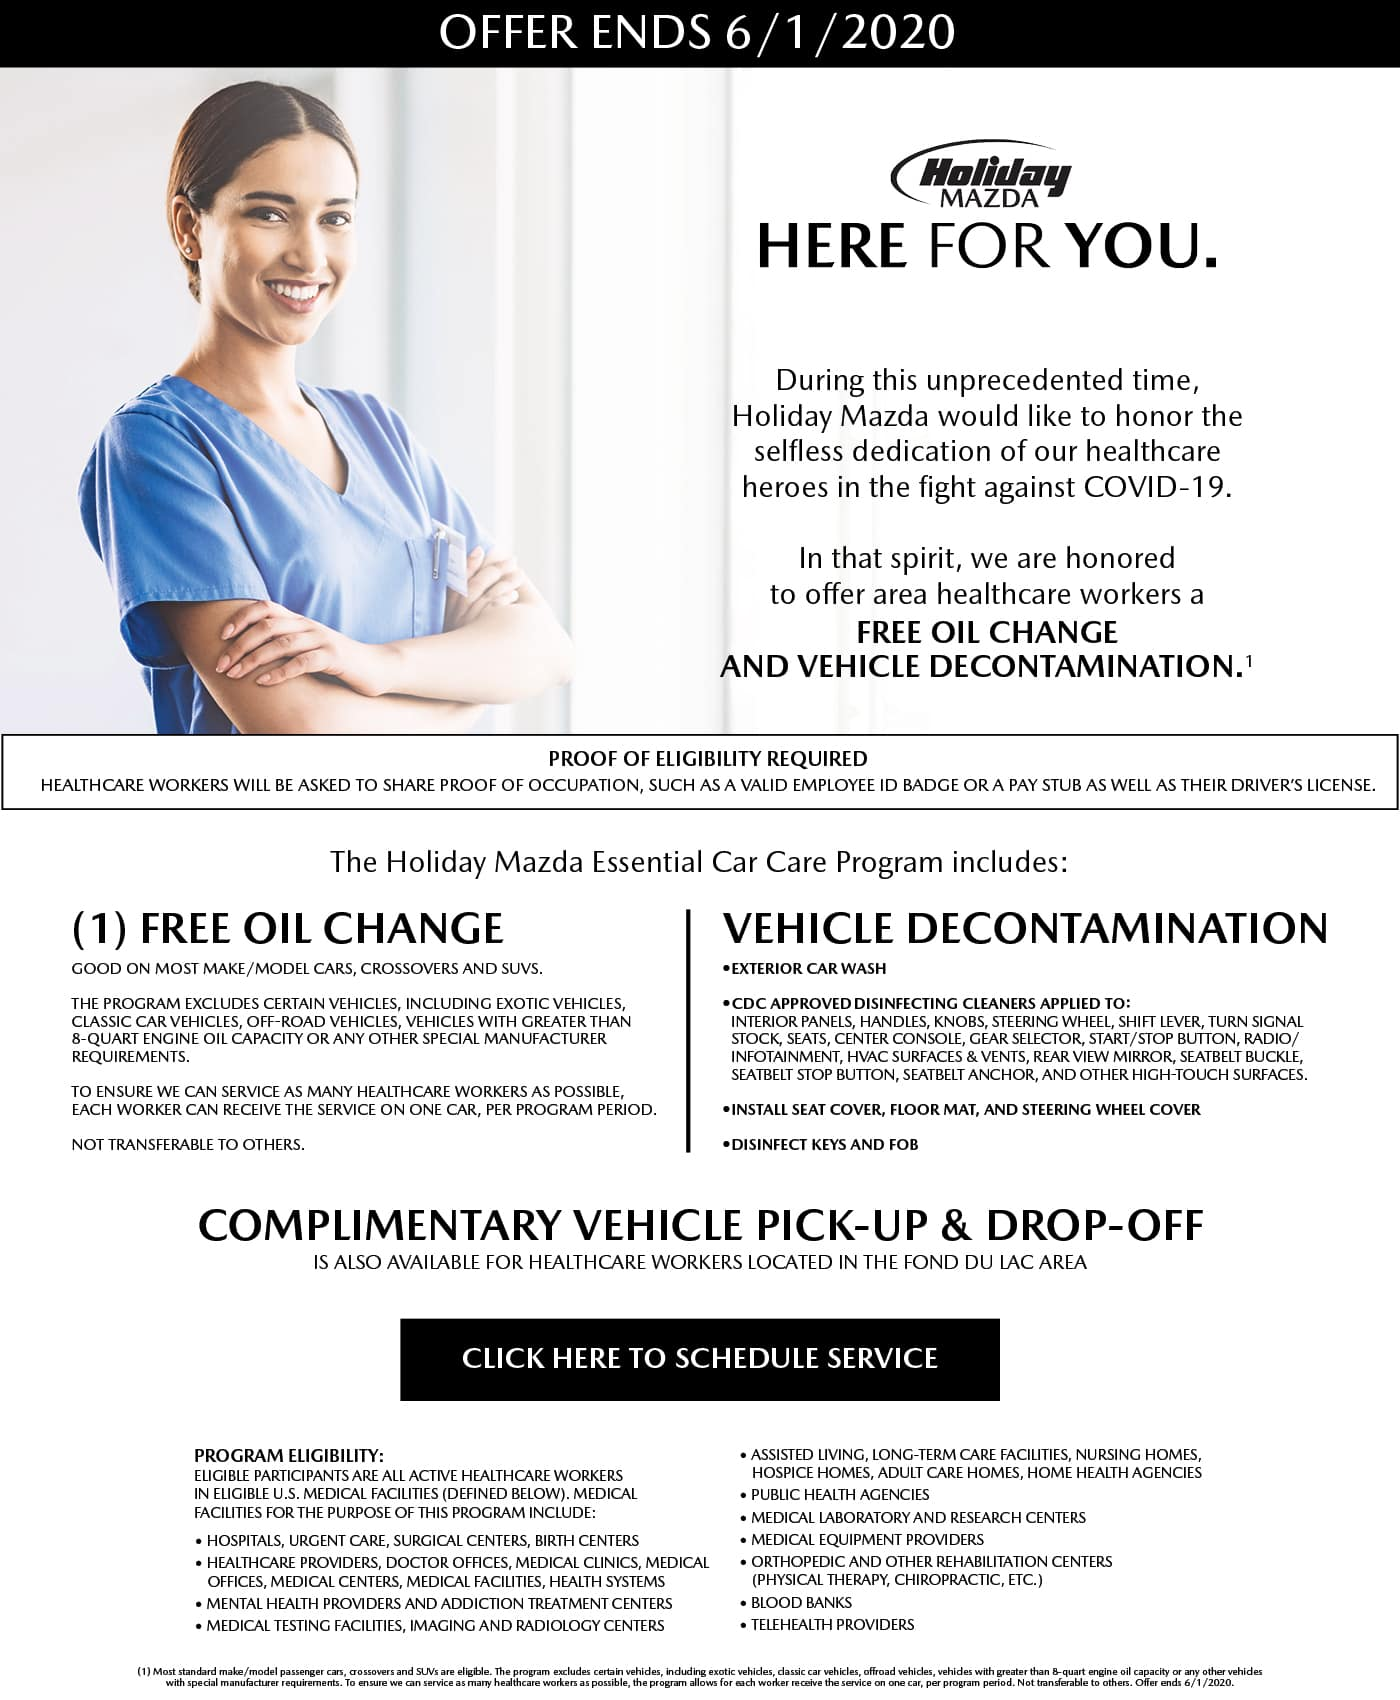 Holiday Mazda Healthcare Worker Essential Car Care Program